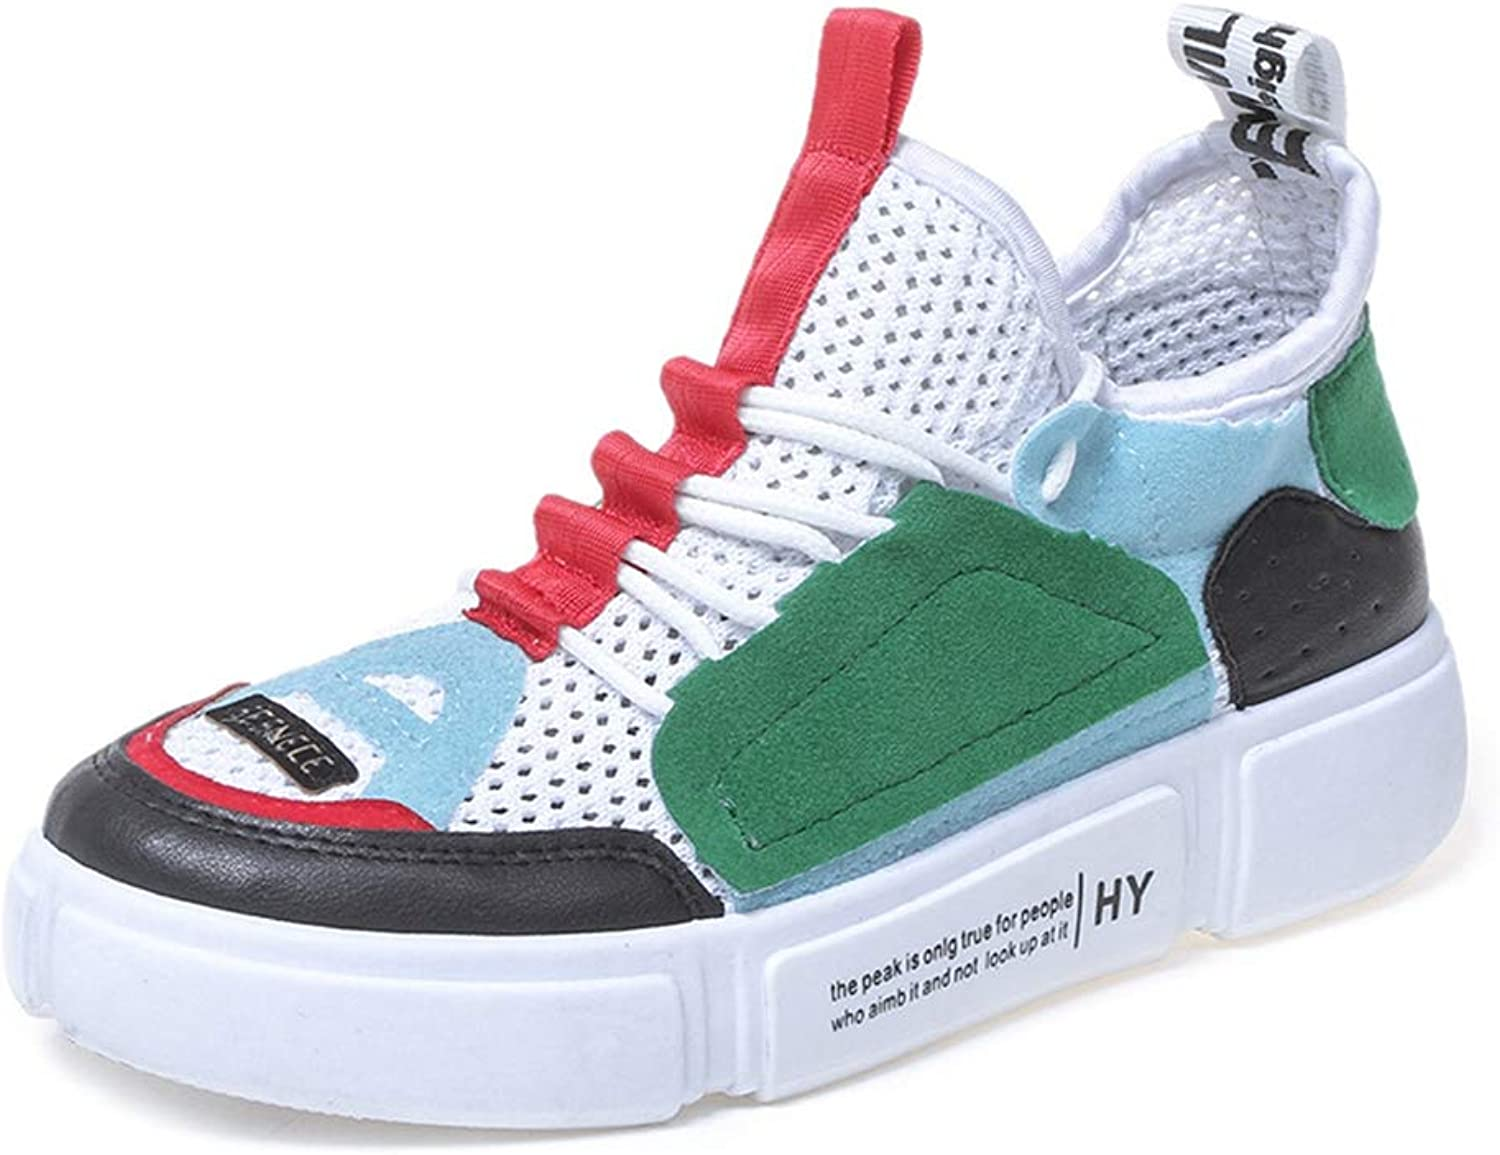 T-JULY Women's Off-White Platform Autumn Wedge Plate Sneakers Girls Runway Breathable shoes